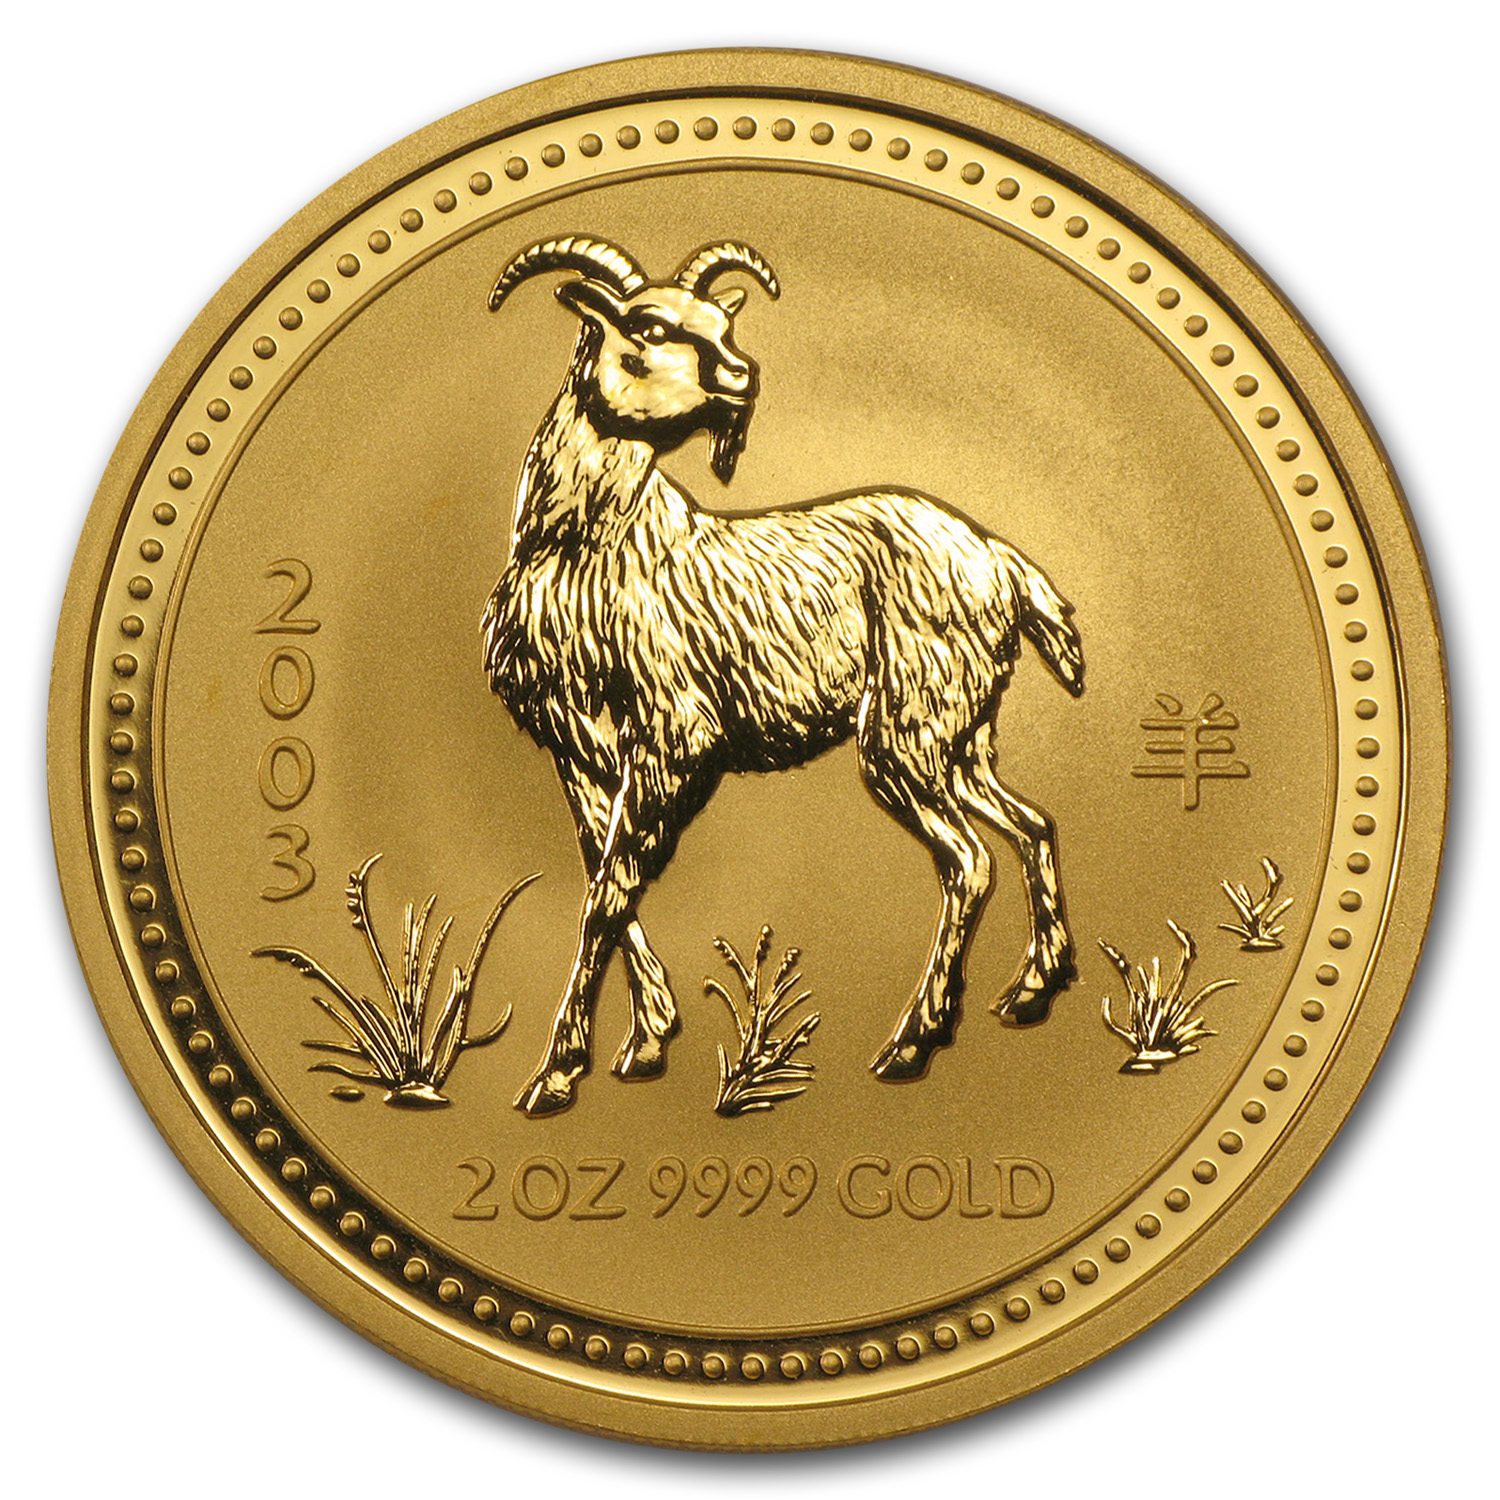 2003 2 oz Gold Lunar Year of the Goat BU (Series I)